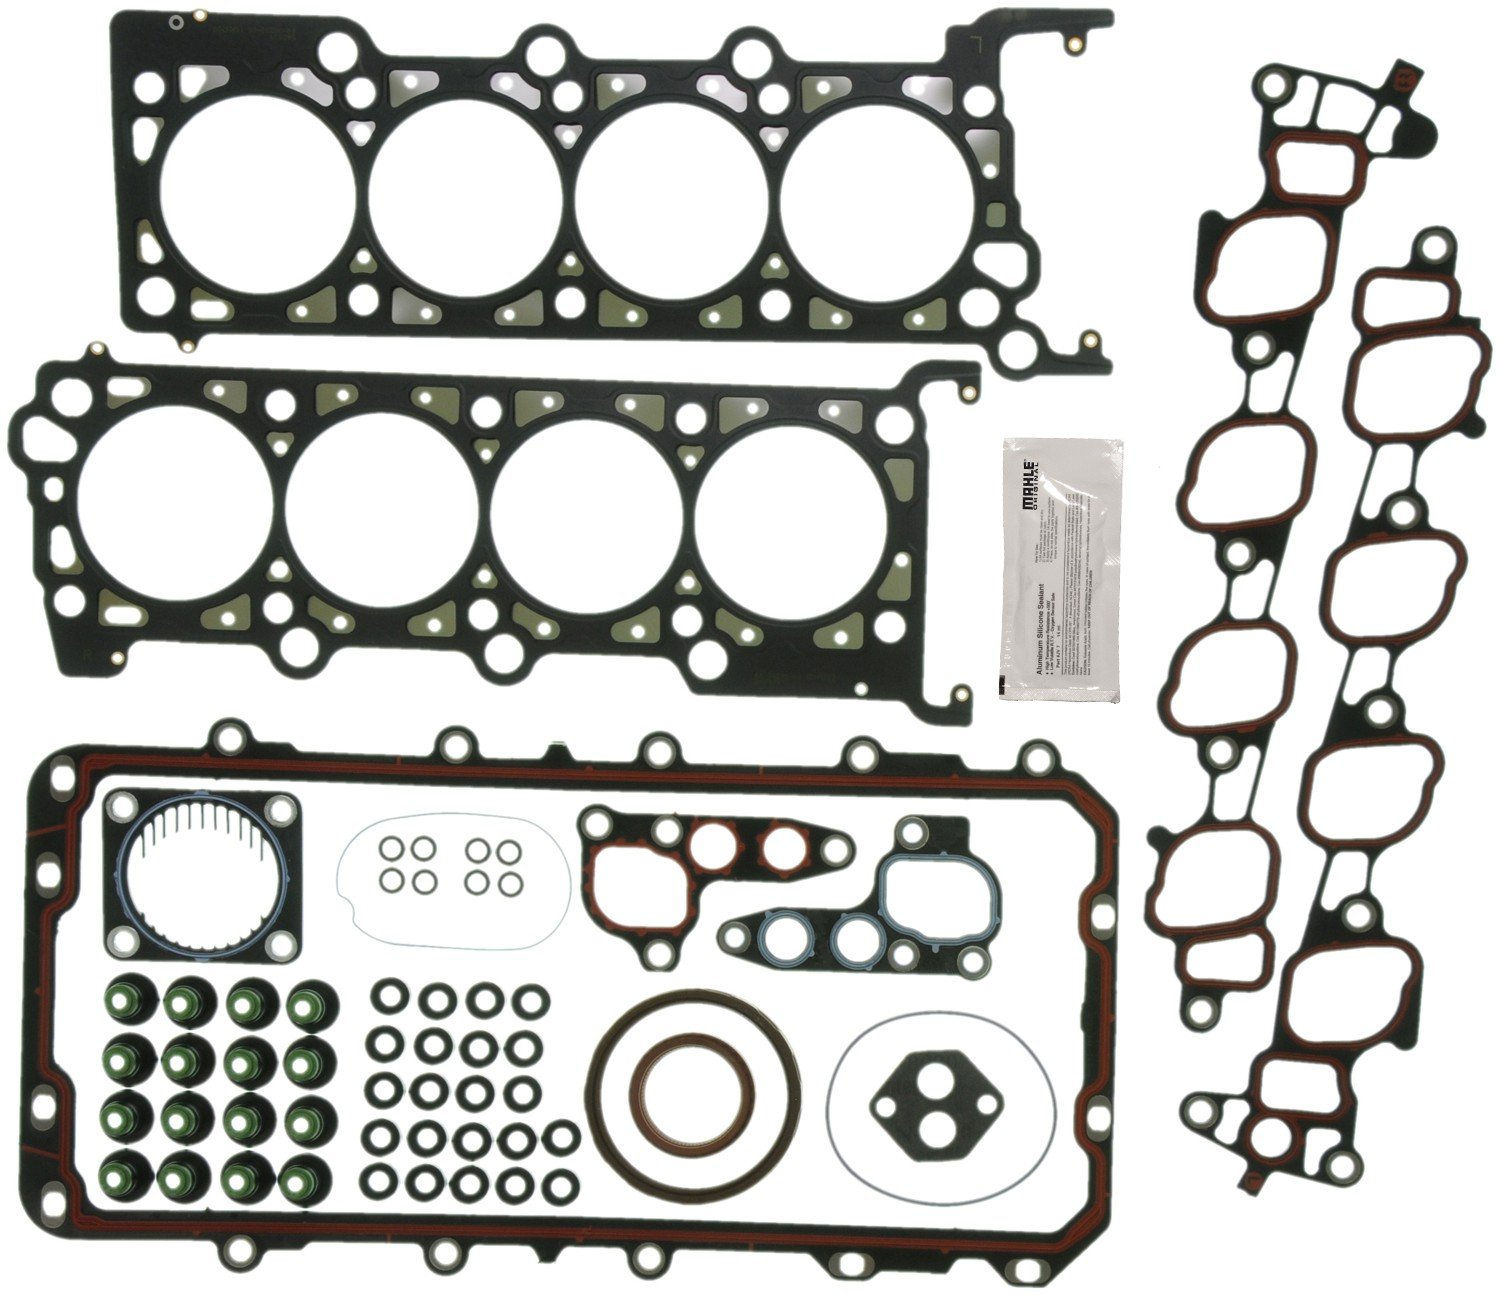 MAHLE Original 95-3592 Engine Gasket Set by MAHLE Original